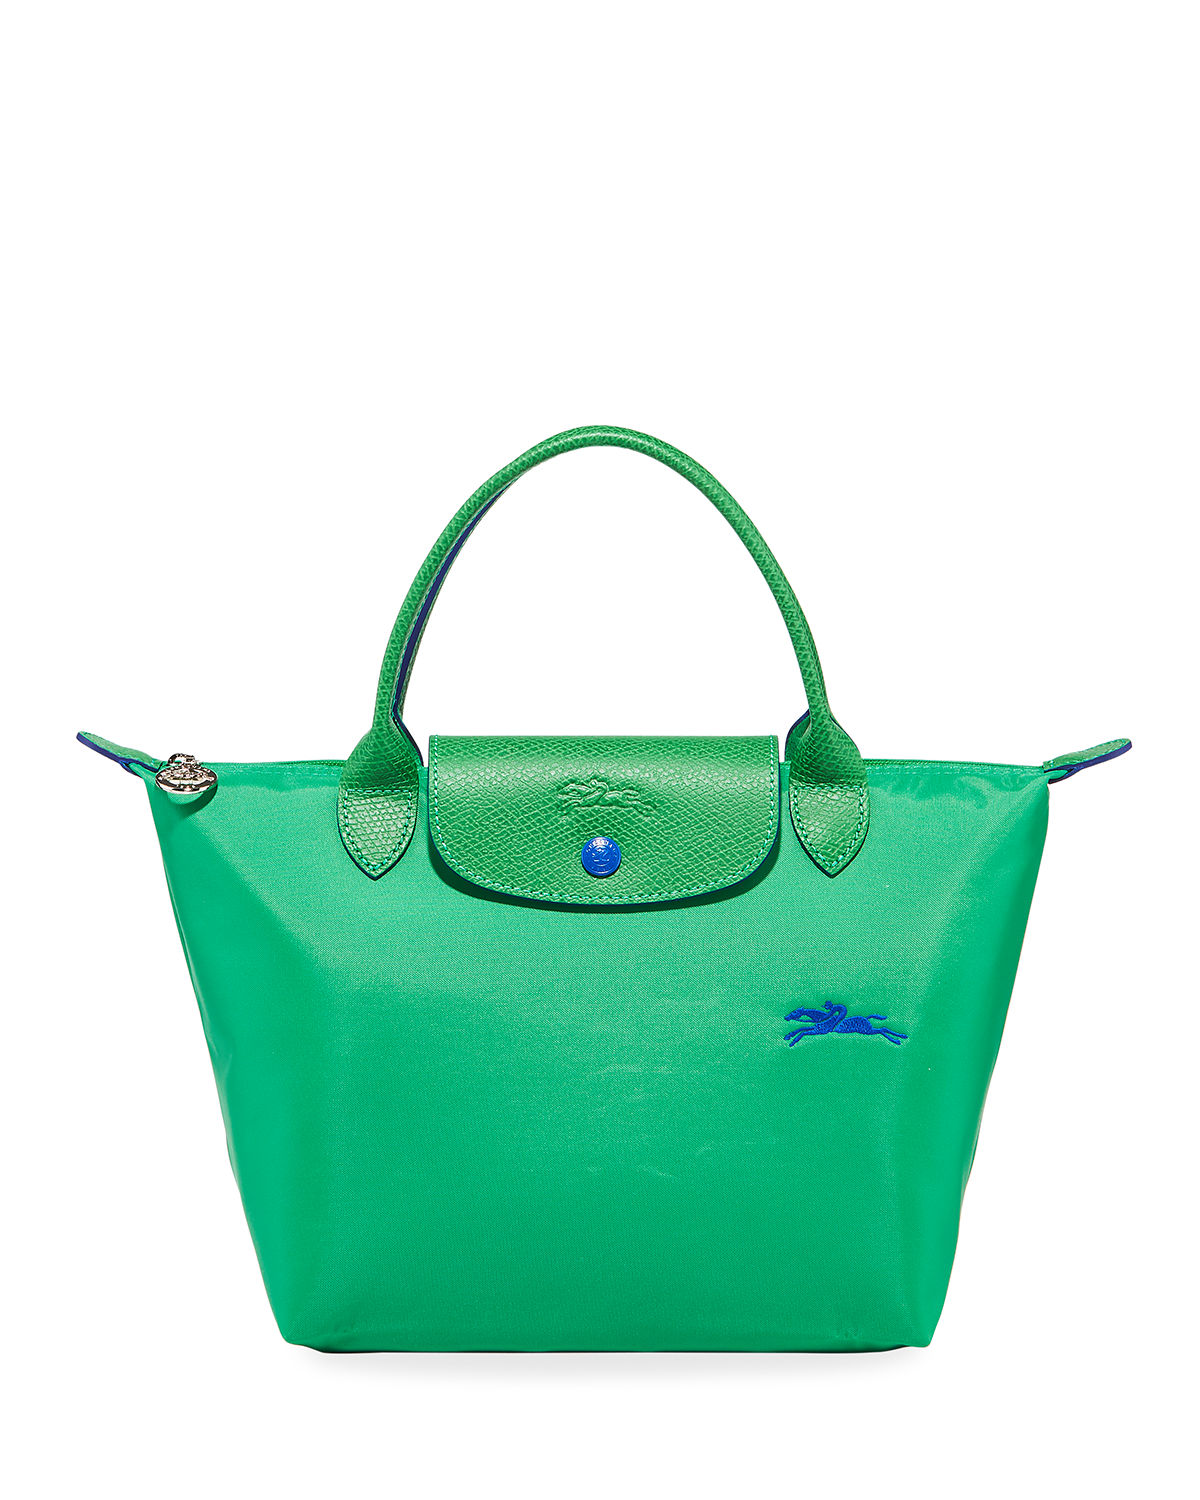 Longchamp Totes LE PLIAGE CLUB SMALL TOP-HANDLE TOTE BAG